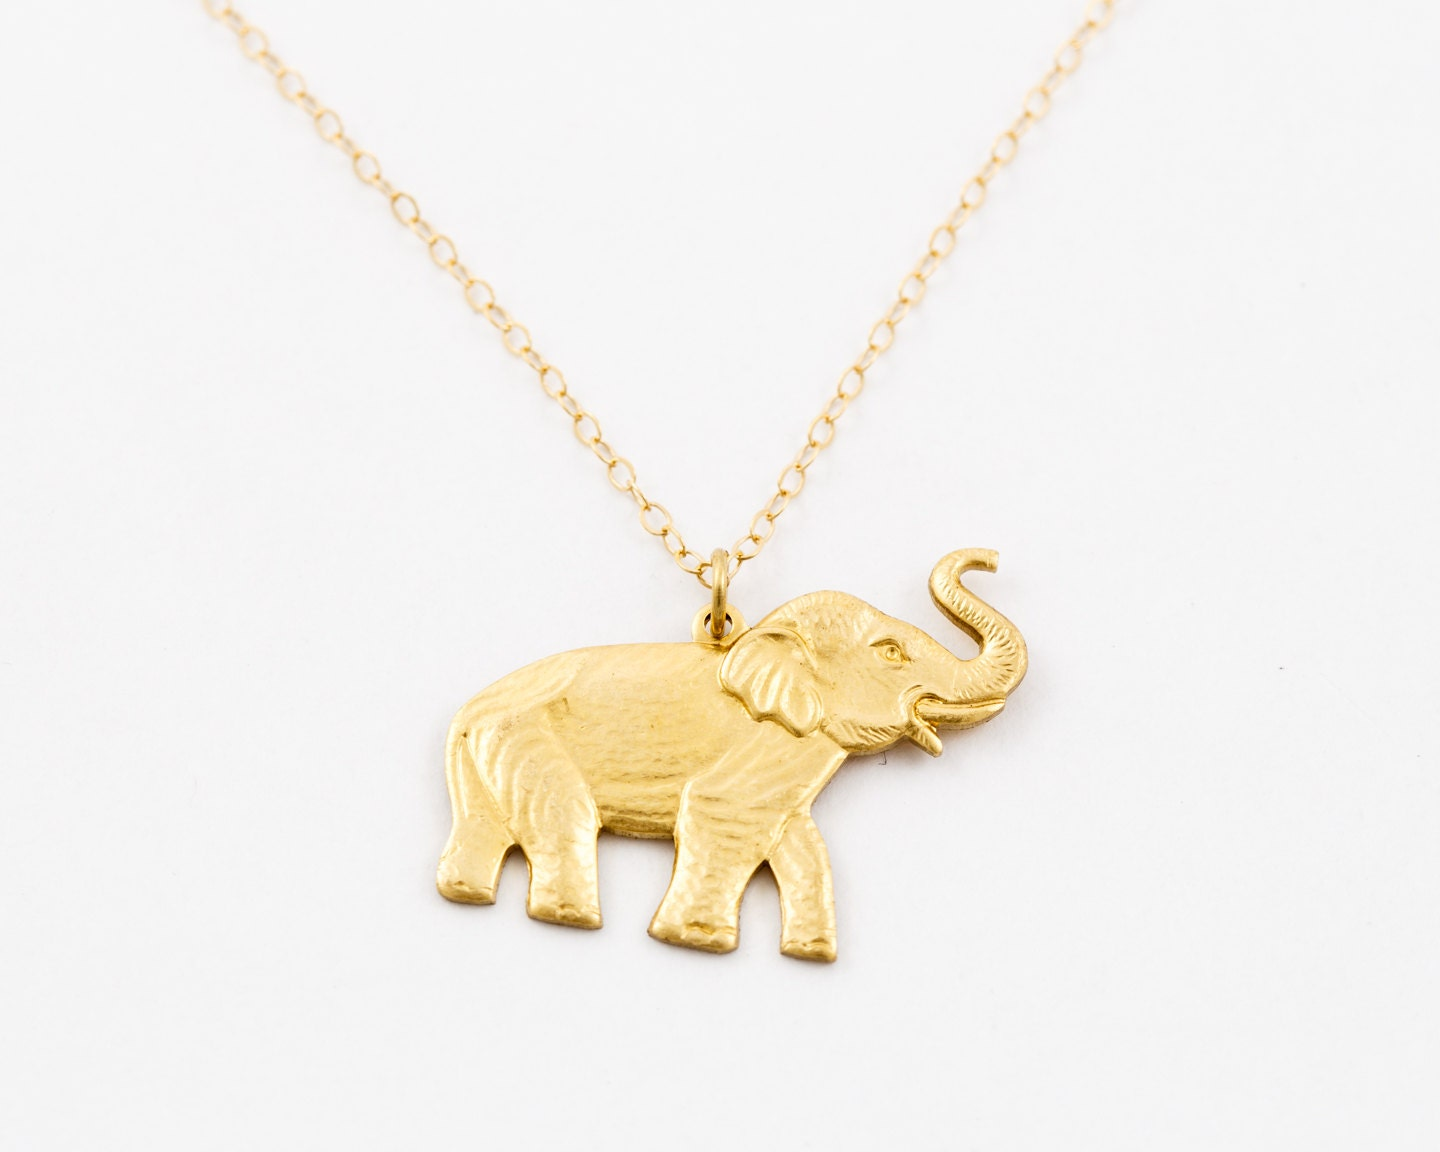 Elephant necklace 14k gold chain necklace gold elephant zoom aloadofball Gallery